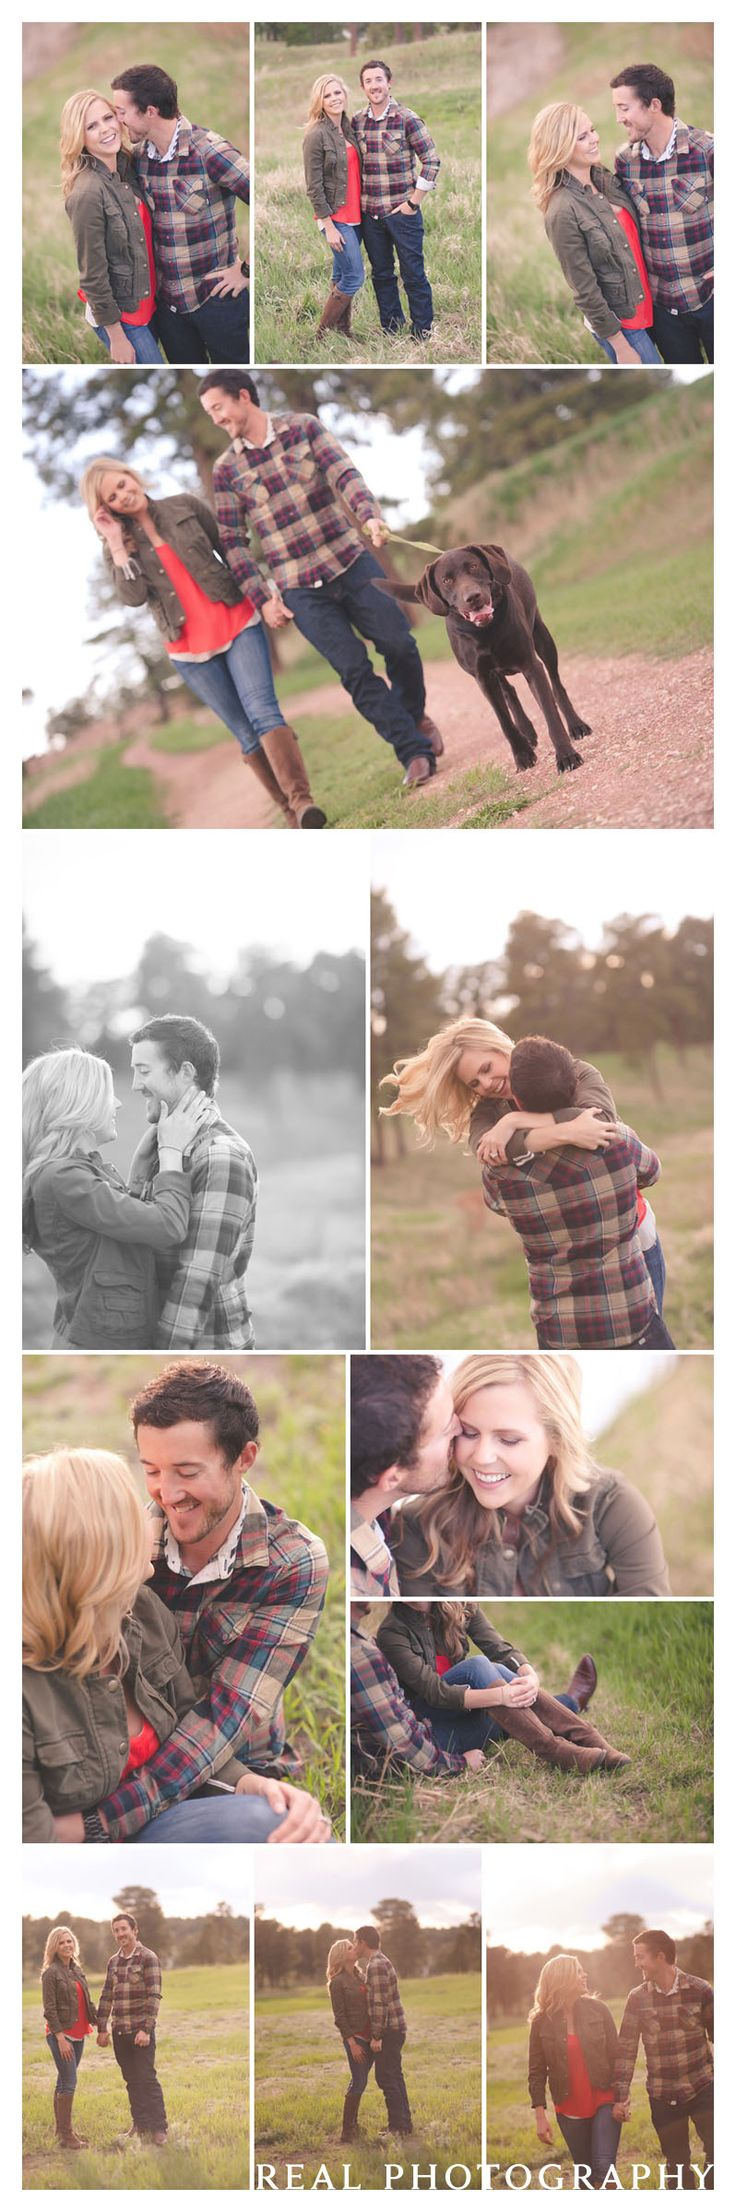 engagement portraits | colorado springs photographer | Real Photography